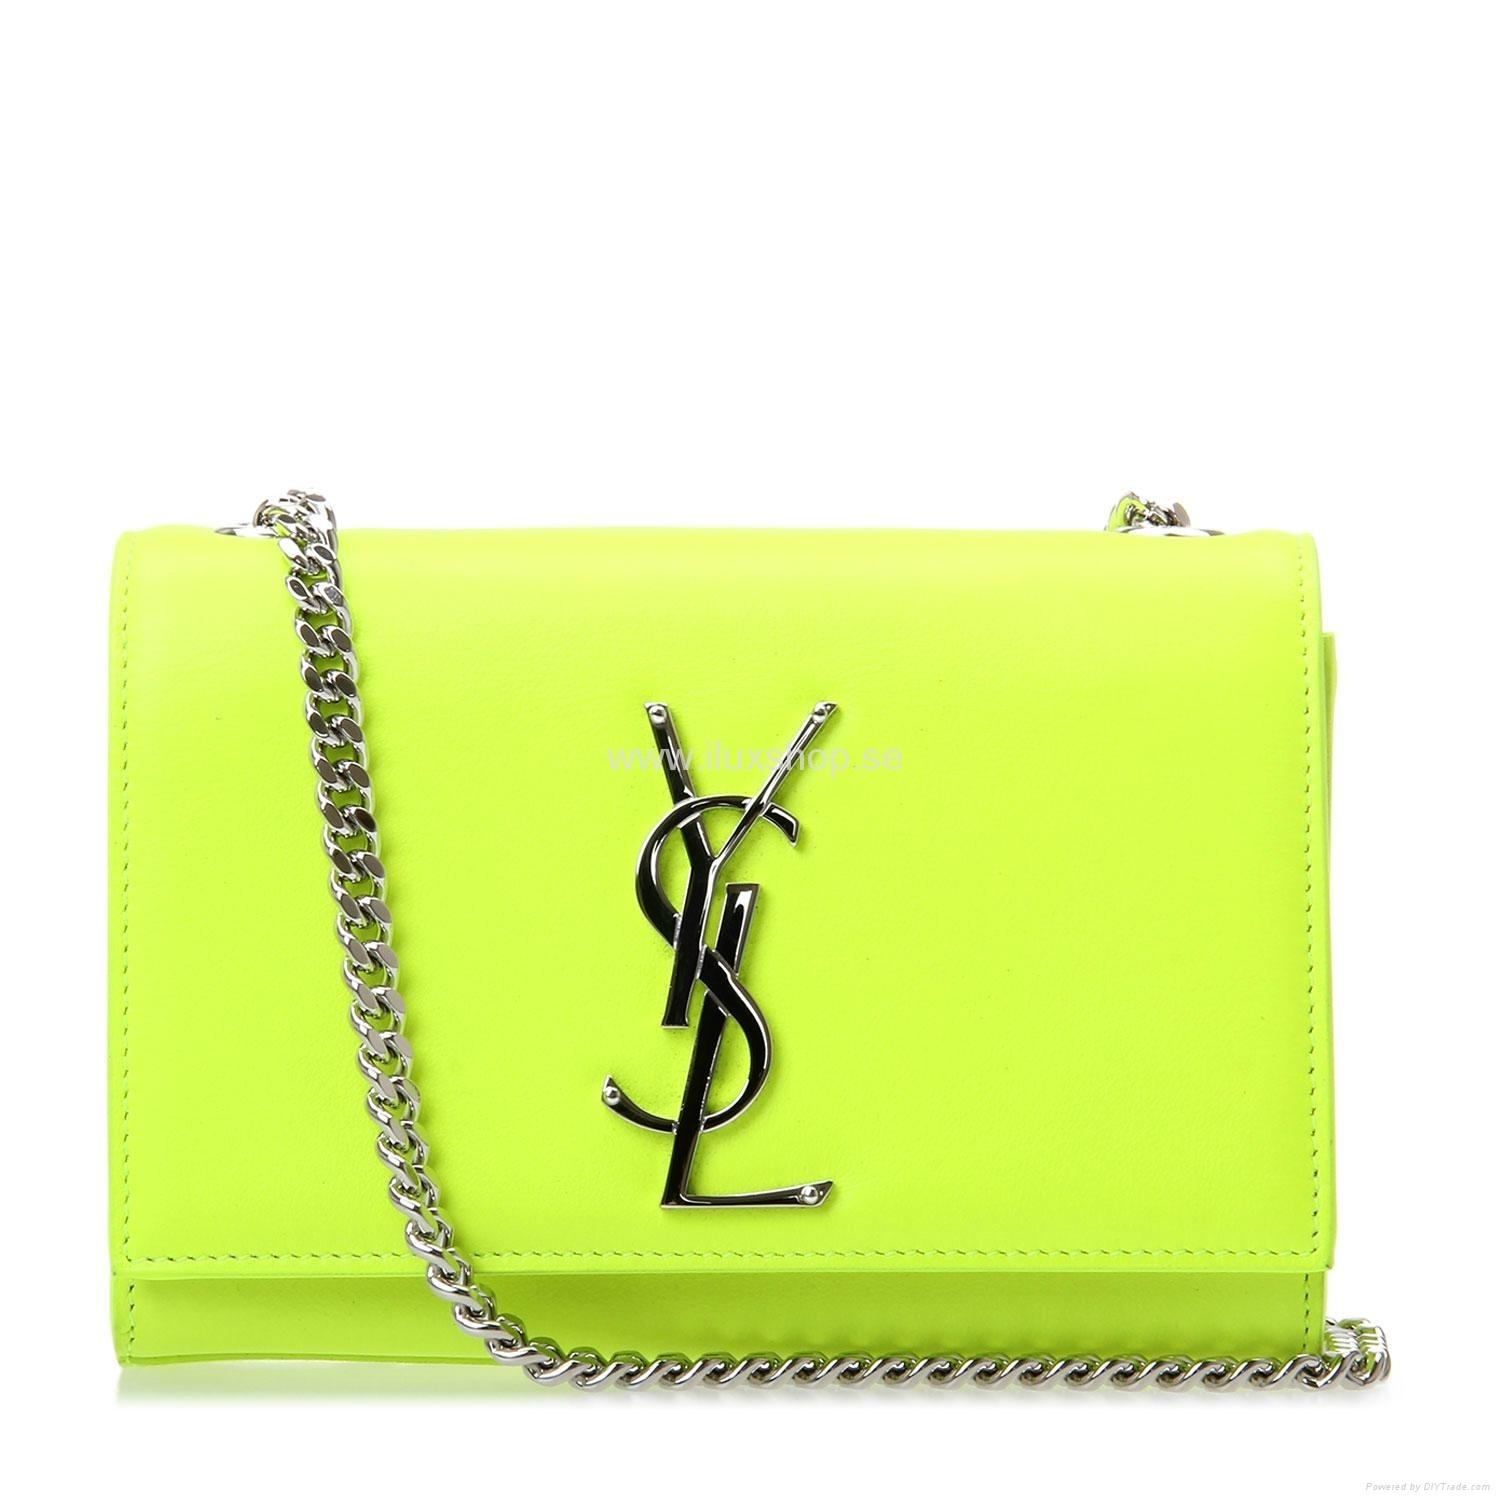 Ysl Wallet Purse Monogrammed Leather Clutch